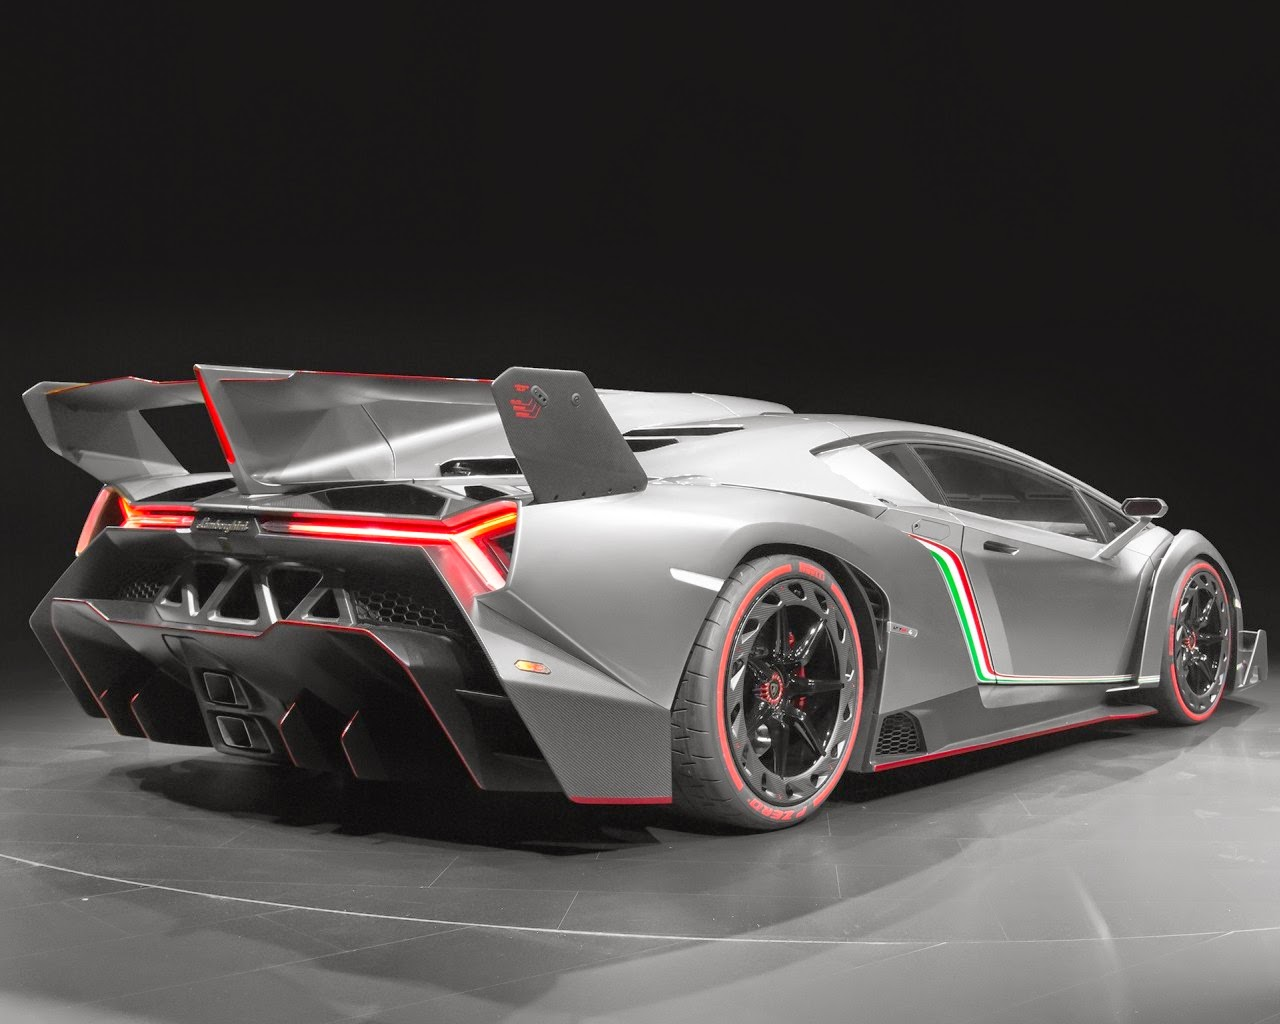 Lamborghini Veneno Wallpapers Best Lamborghini Veneno Wallpapers Download